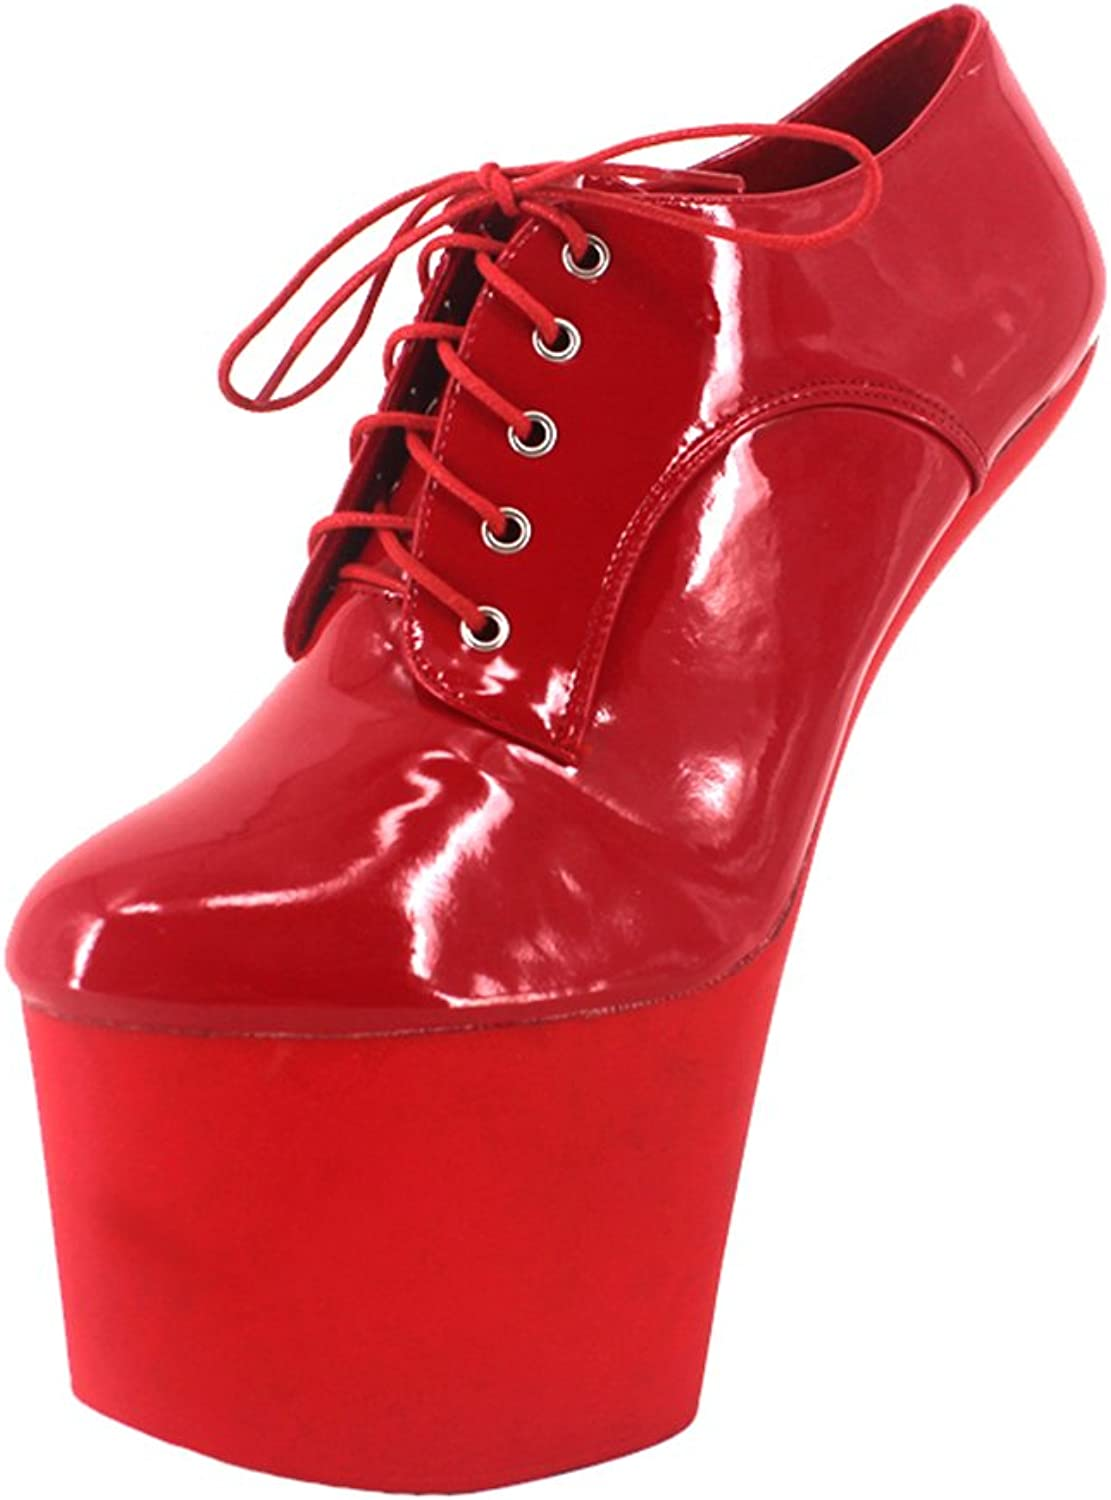 Wonderheel 8  Heelless Ankle Boots red Shiny Sexy Fetish Platform lace up Boots